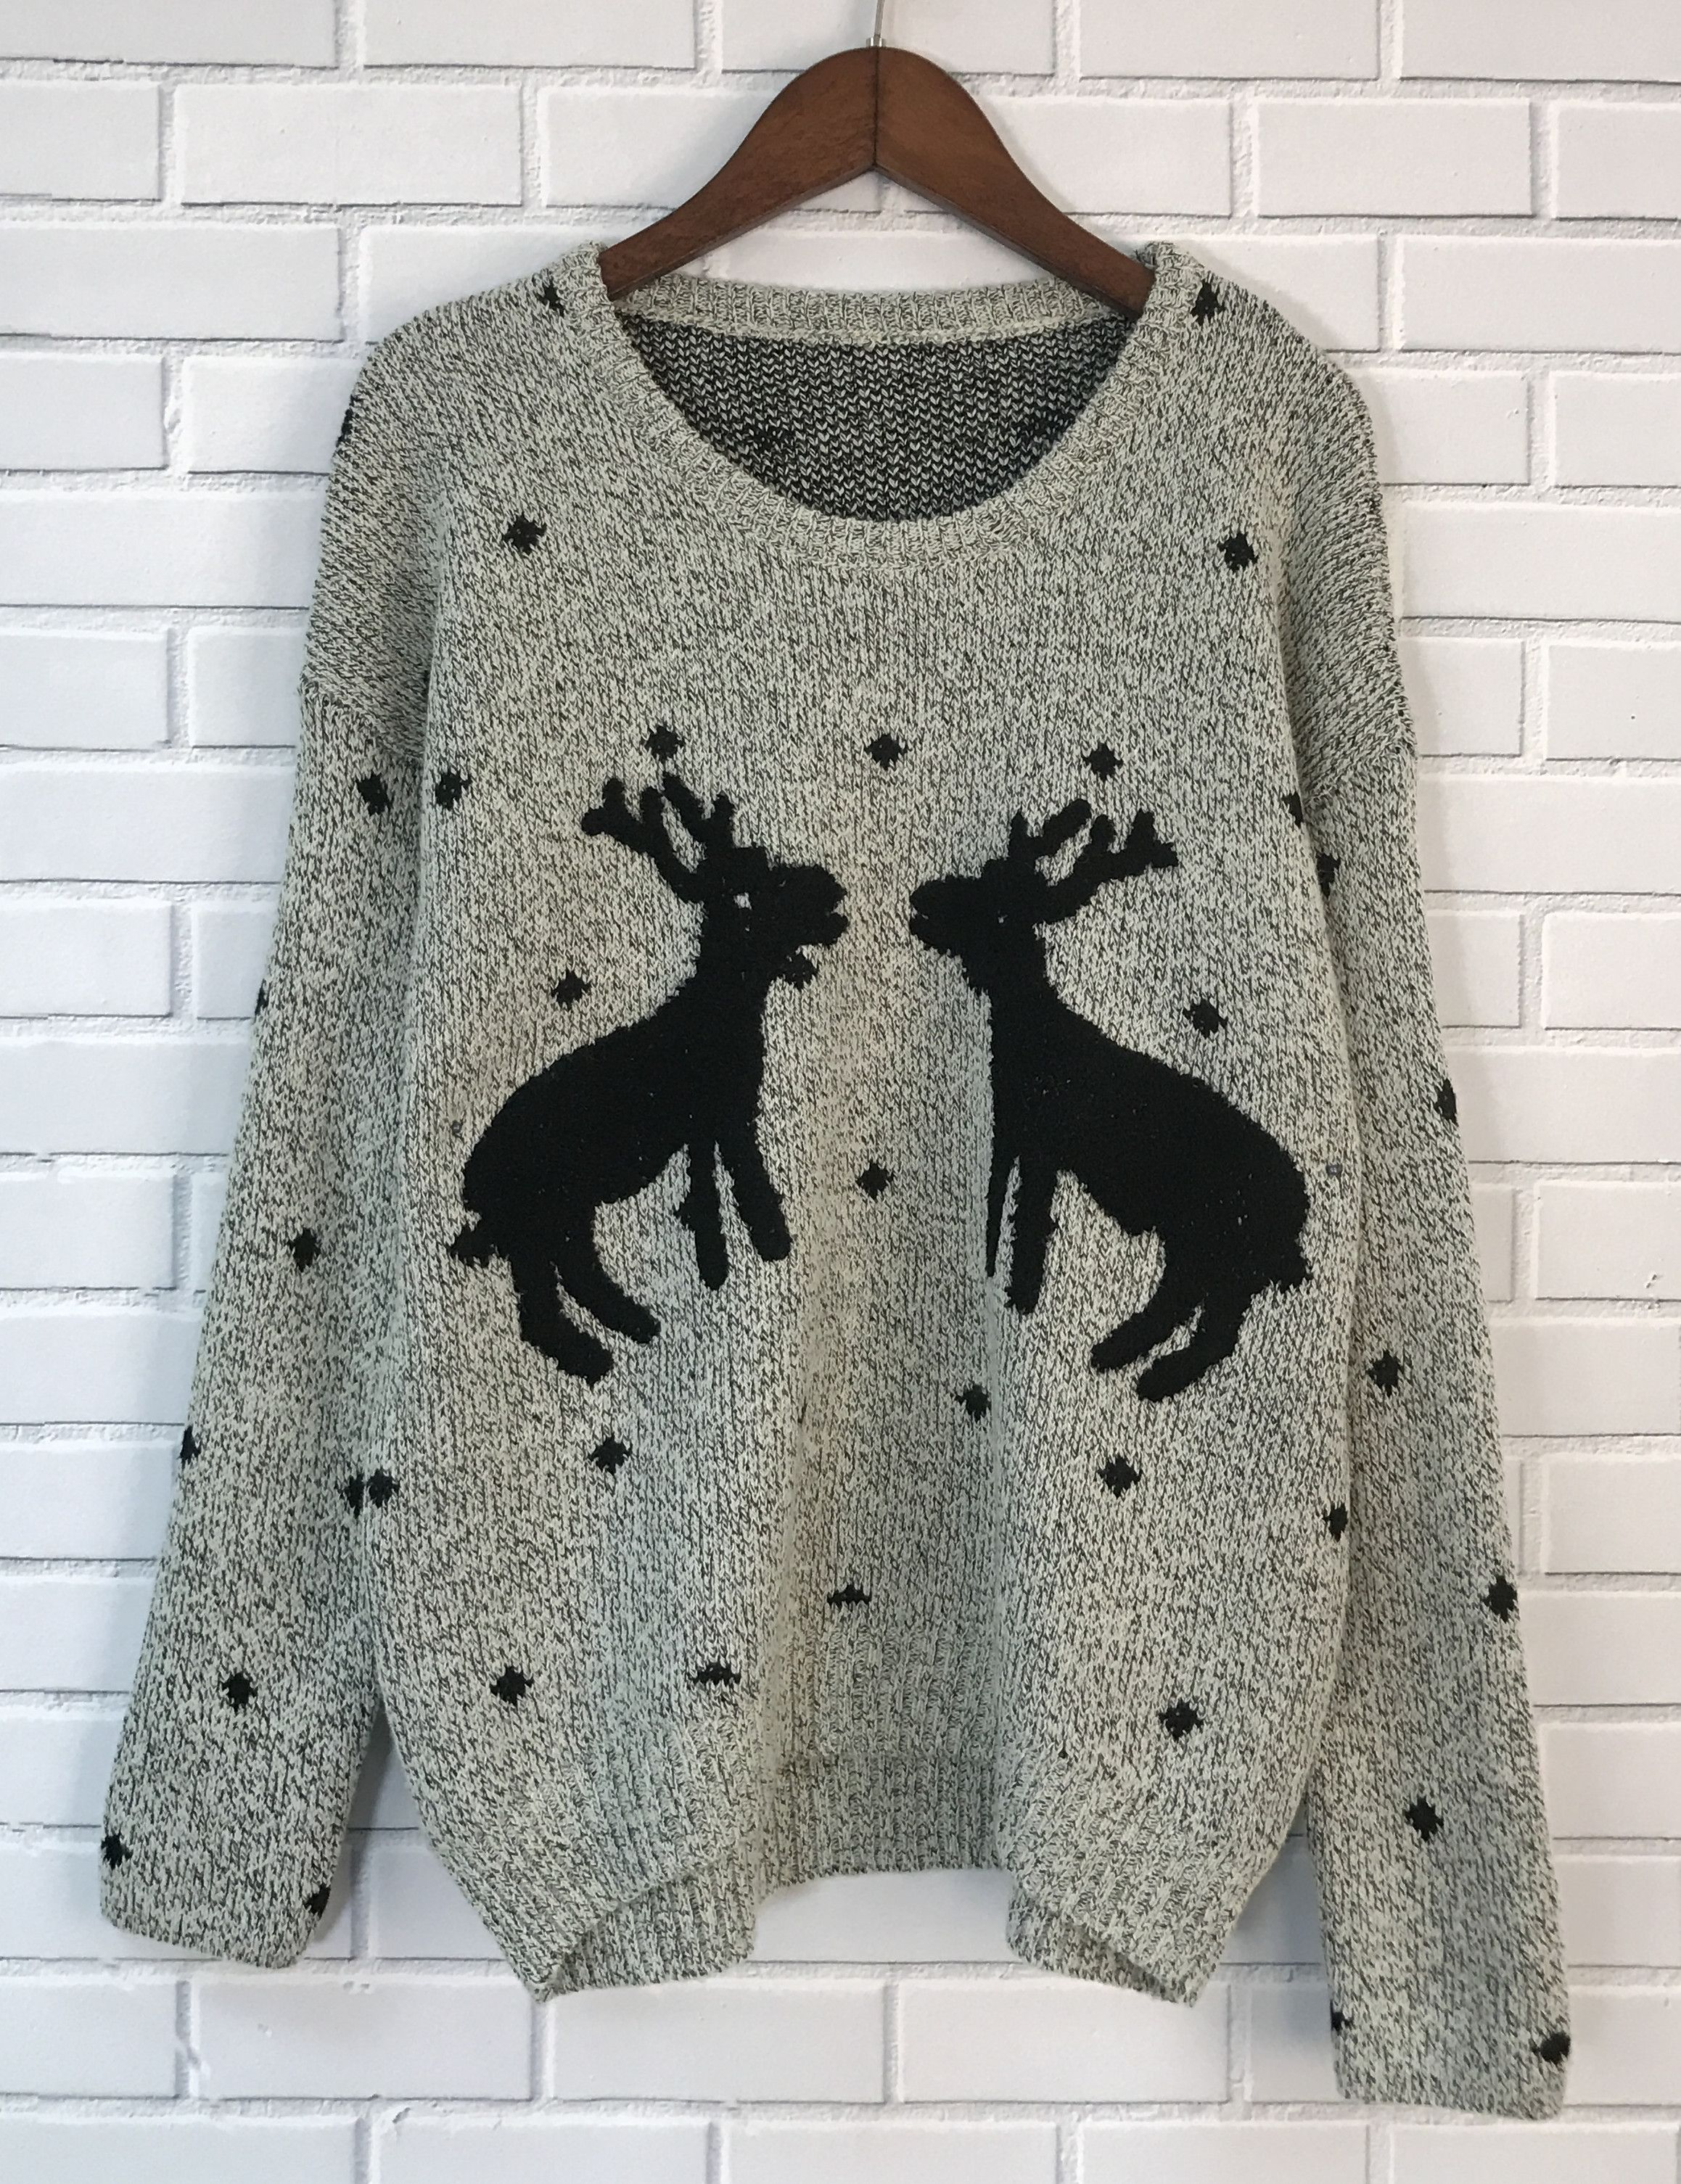 Reindeer Graphic Knit Sweater Keep You Warm In Chill